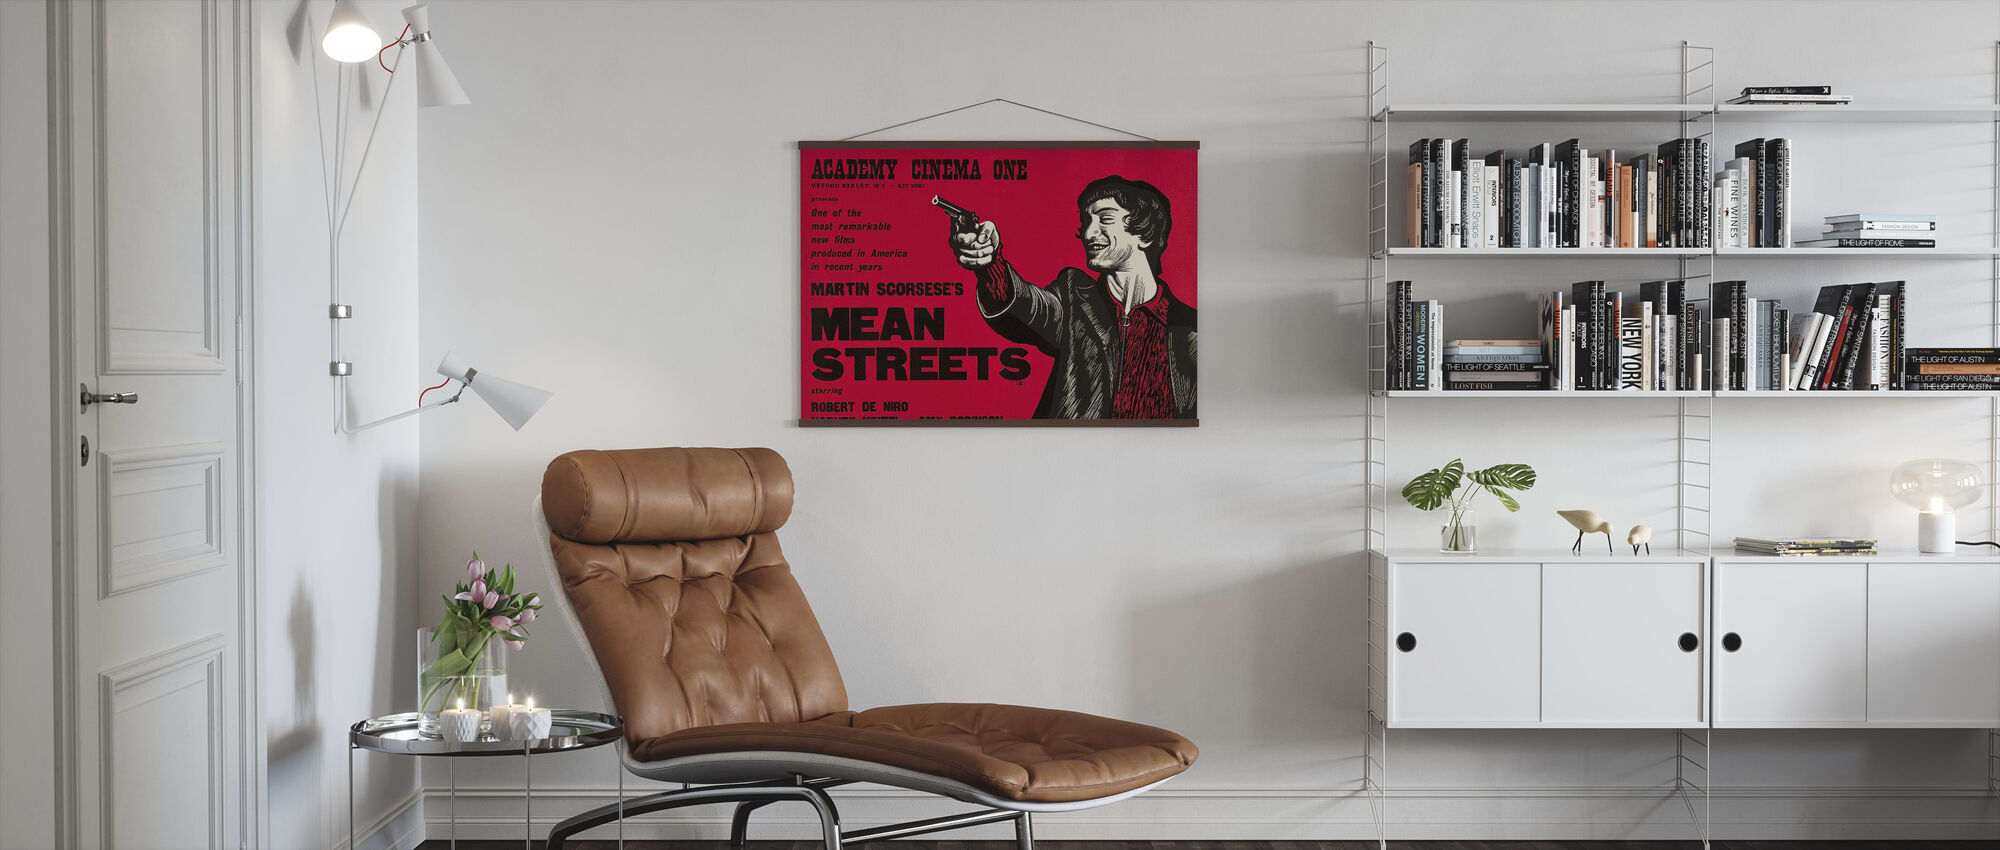 Mean Streets - Poster - Living Room